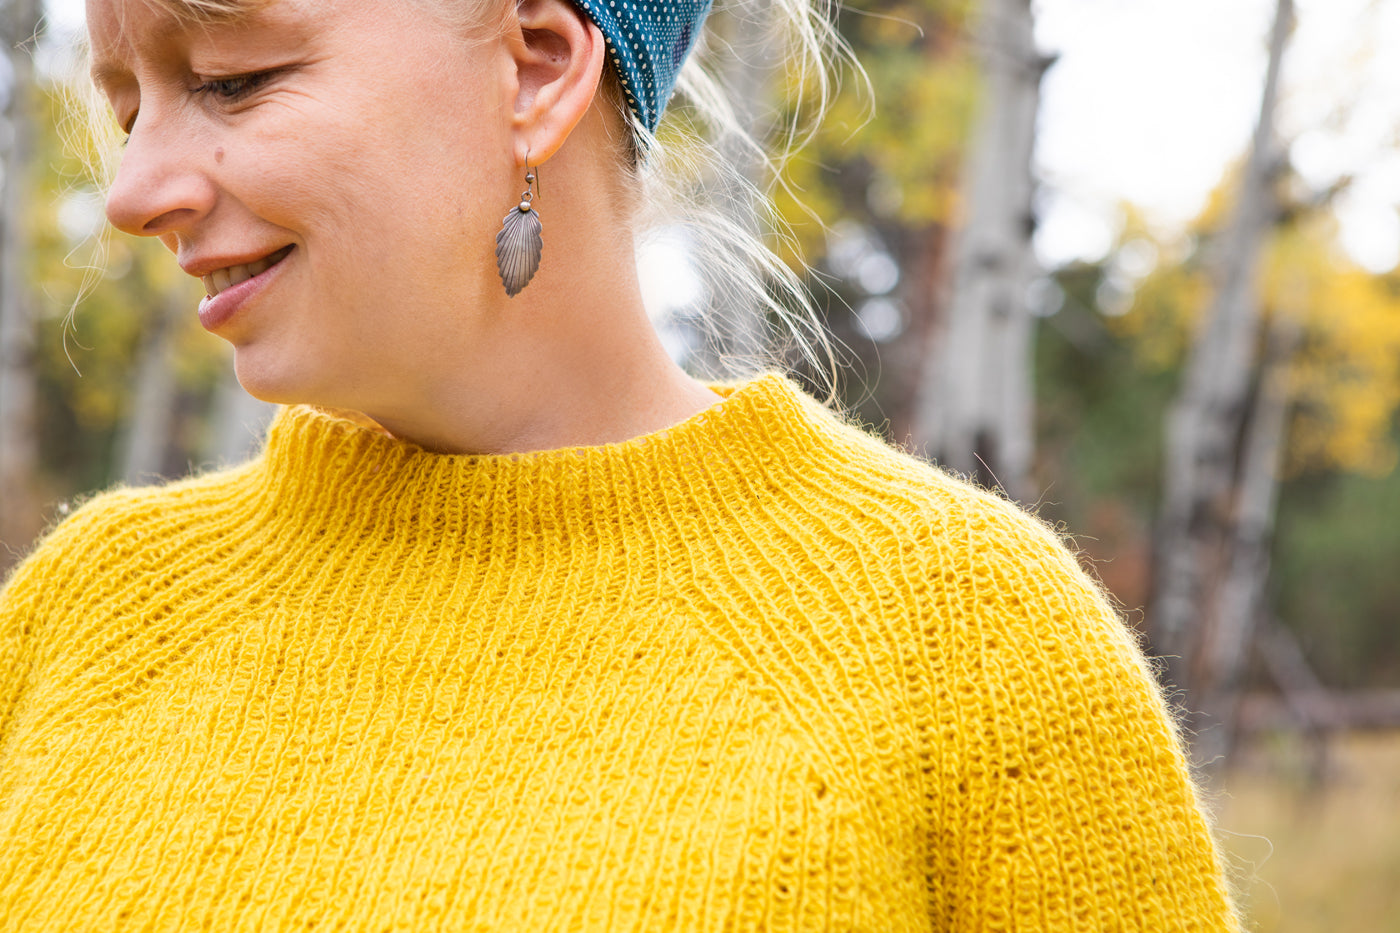 This is a detail shot of Amber and her yellow sweater's neckline.